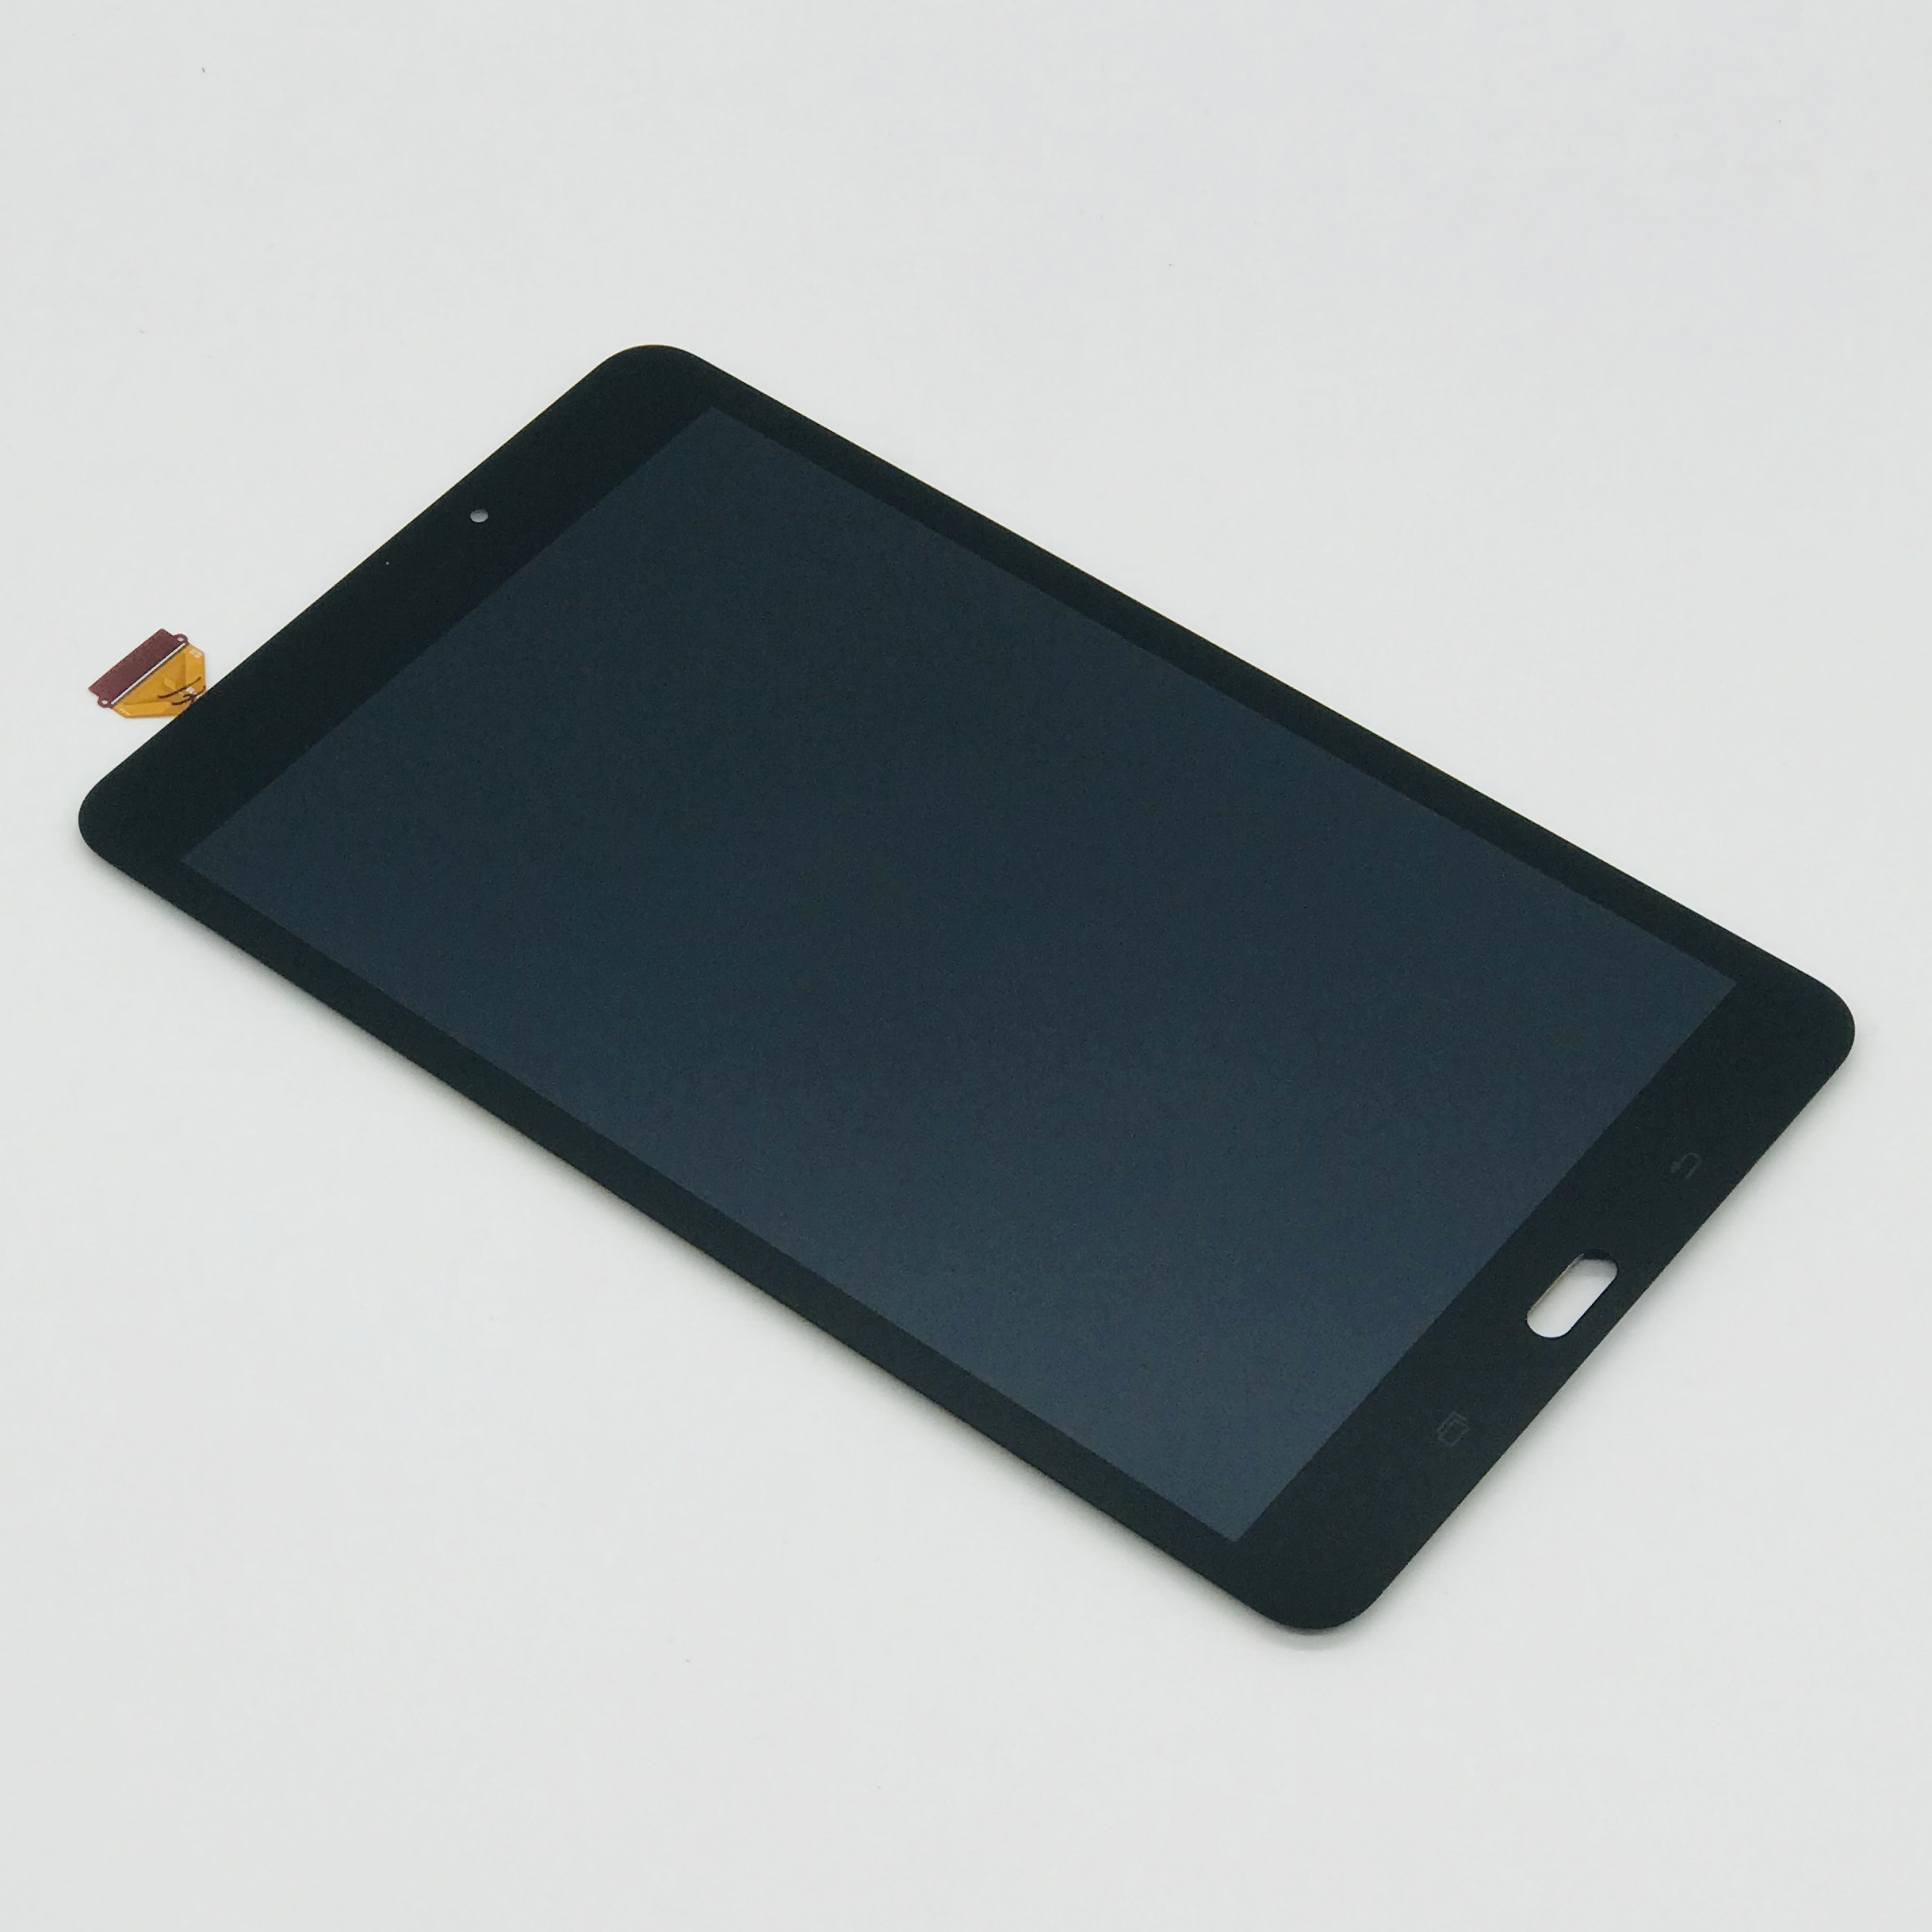 oPesea For Samsung Galaxy Tab A 8.0 2017 SM-T380 SM-T385 T380 T385 Touch Screen Digitizer LCD Display Panel Glass Assembly(China)